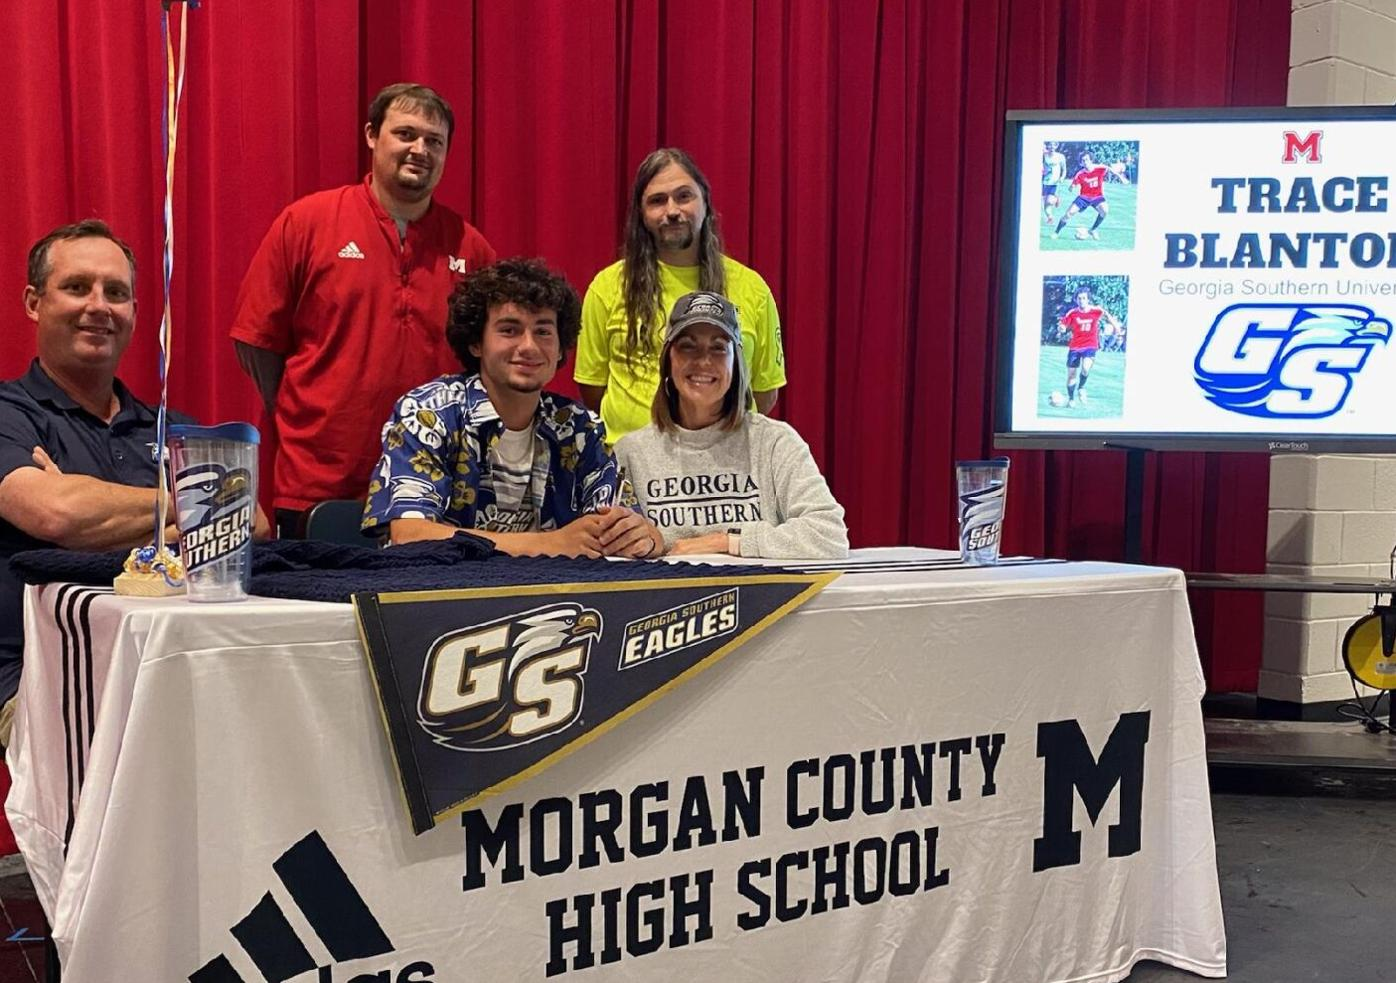 blanton signing with parents: coaches.jpg